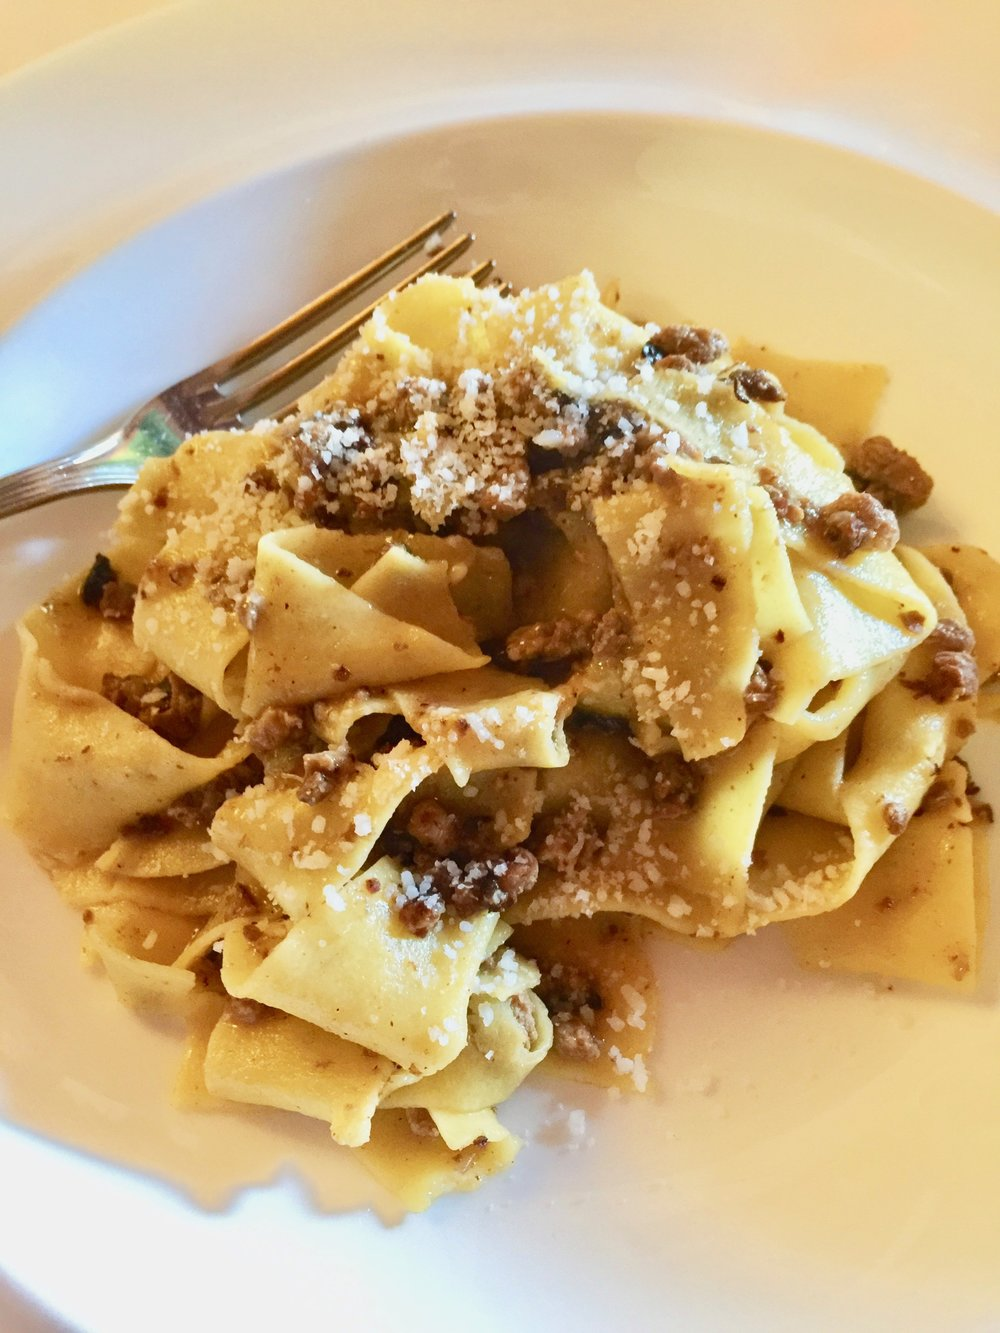 Another gorgeous pasta that dreams are made of: pappardelle, sausage, porcini mushrooms.